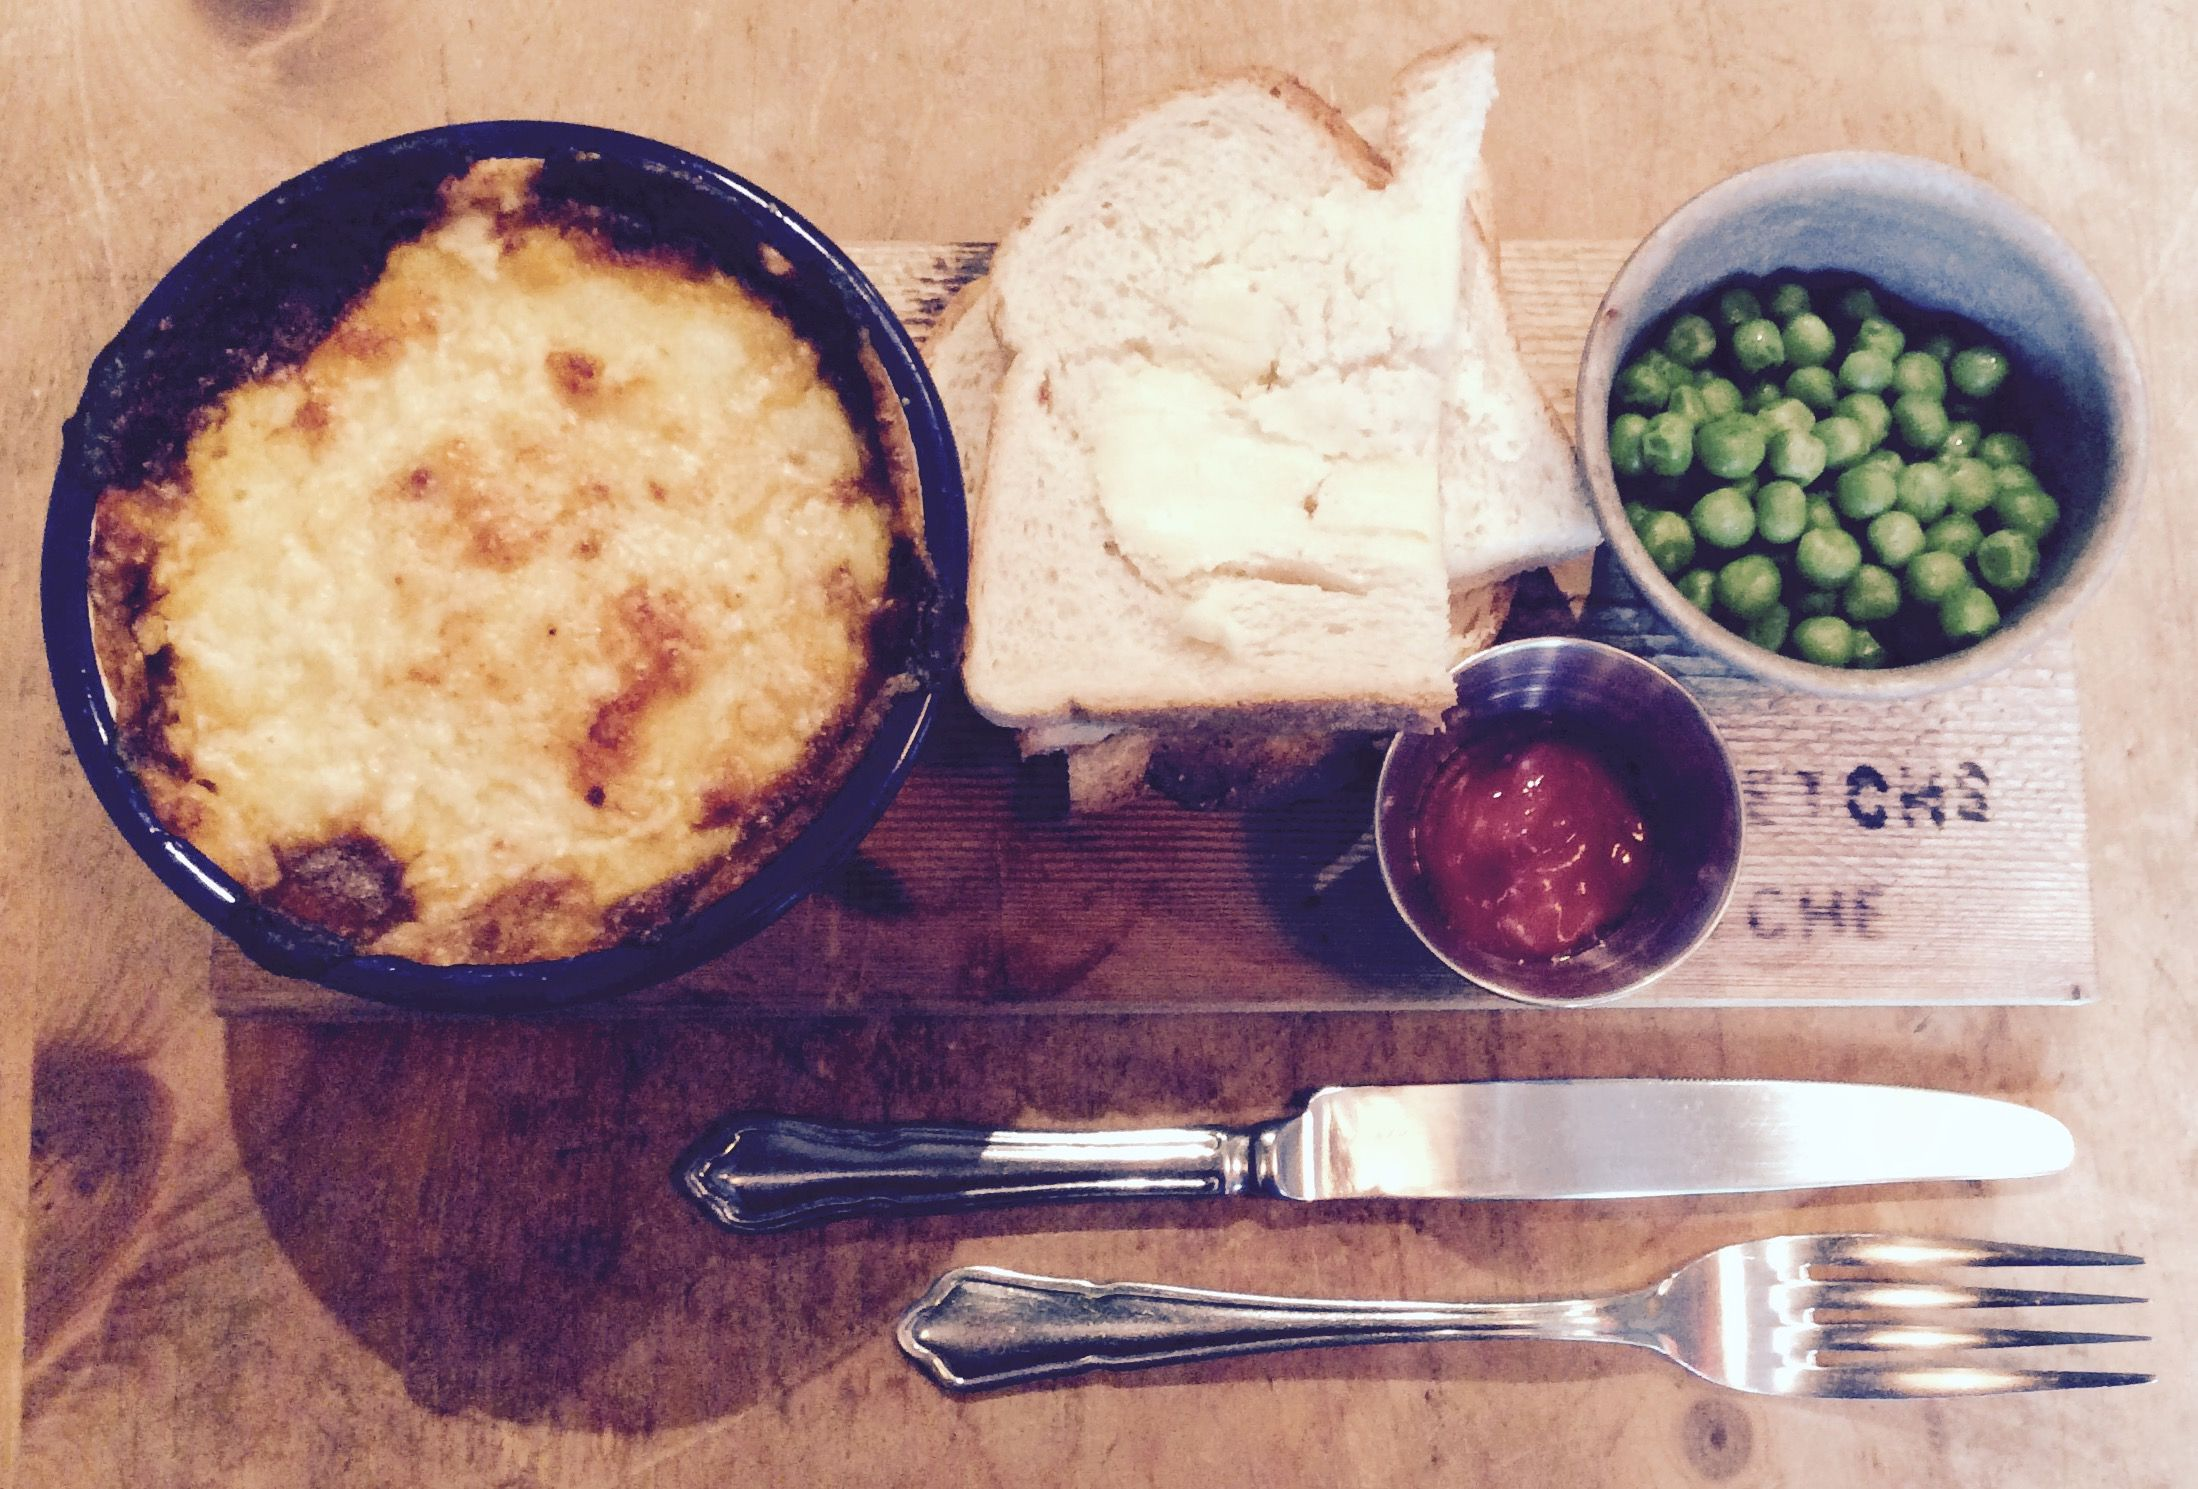 Classic cottage pie (mince, onion, celery,carrot, rosemary, thyme, tom puree, red wine, stock, worcester sauce, topped with mash and cheddar) served with peas, ketchup & bread n butter.